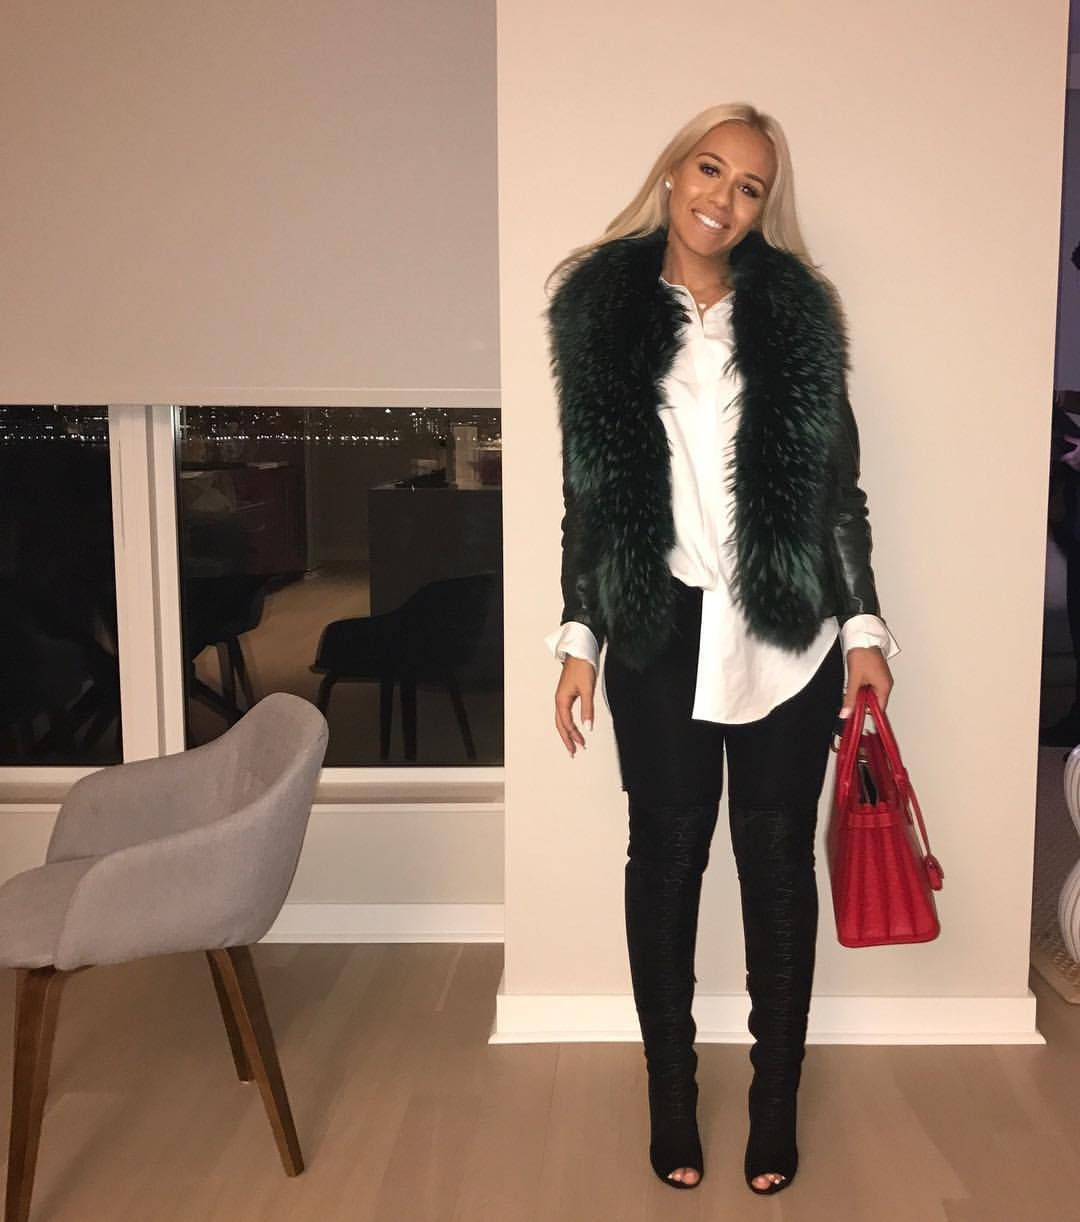 Black and white colour outfit with fur clothing, jean jacket, blazer